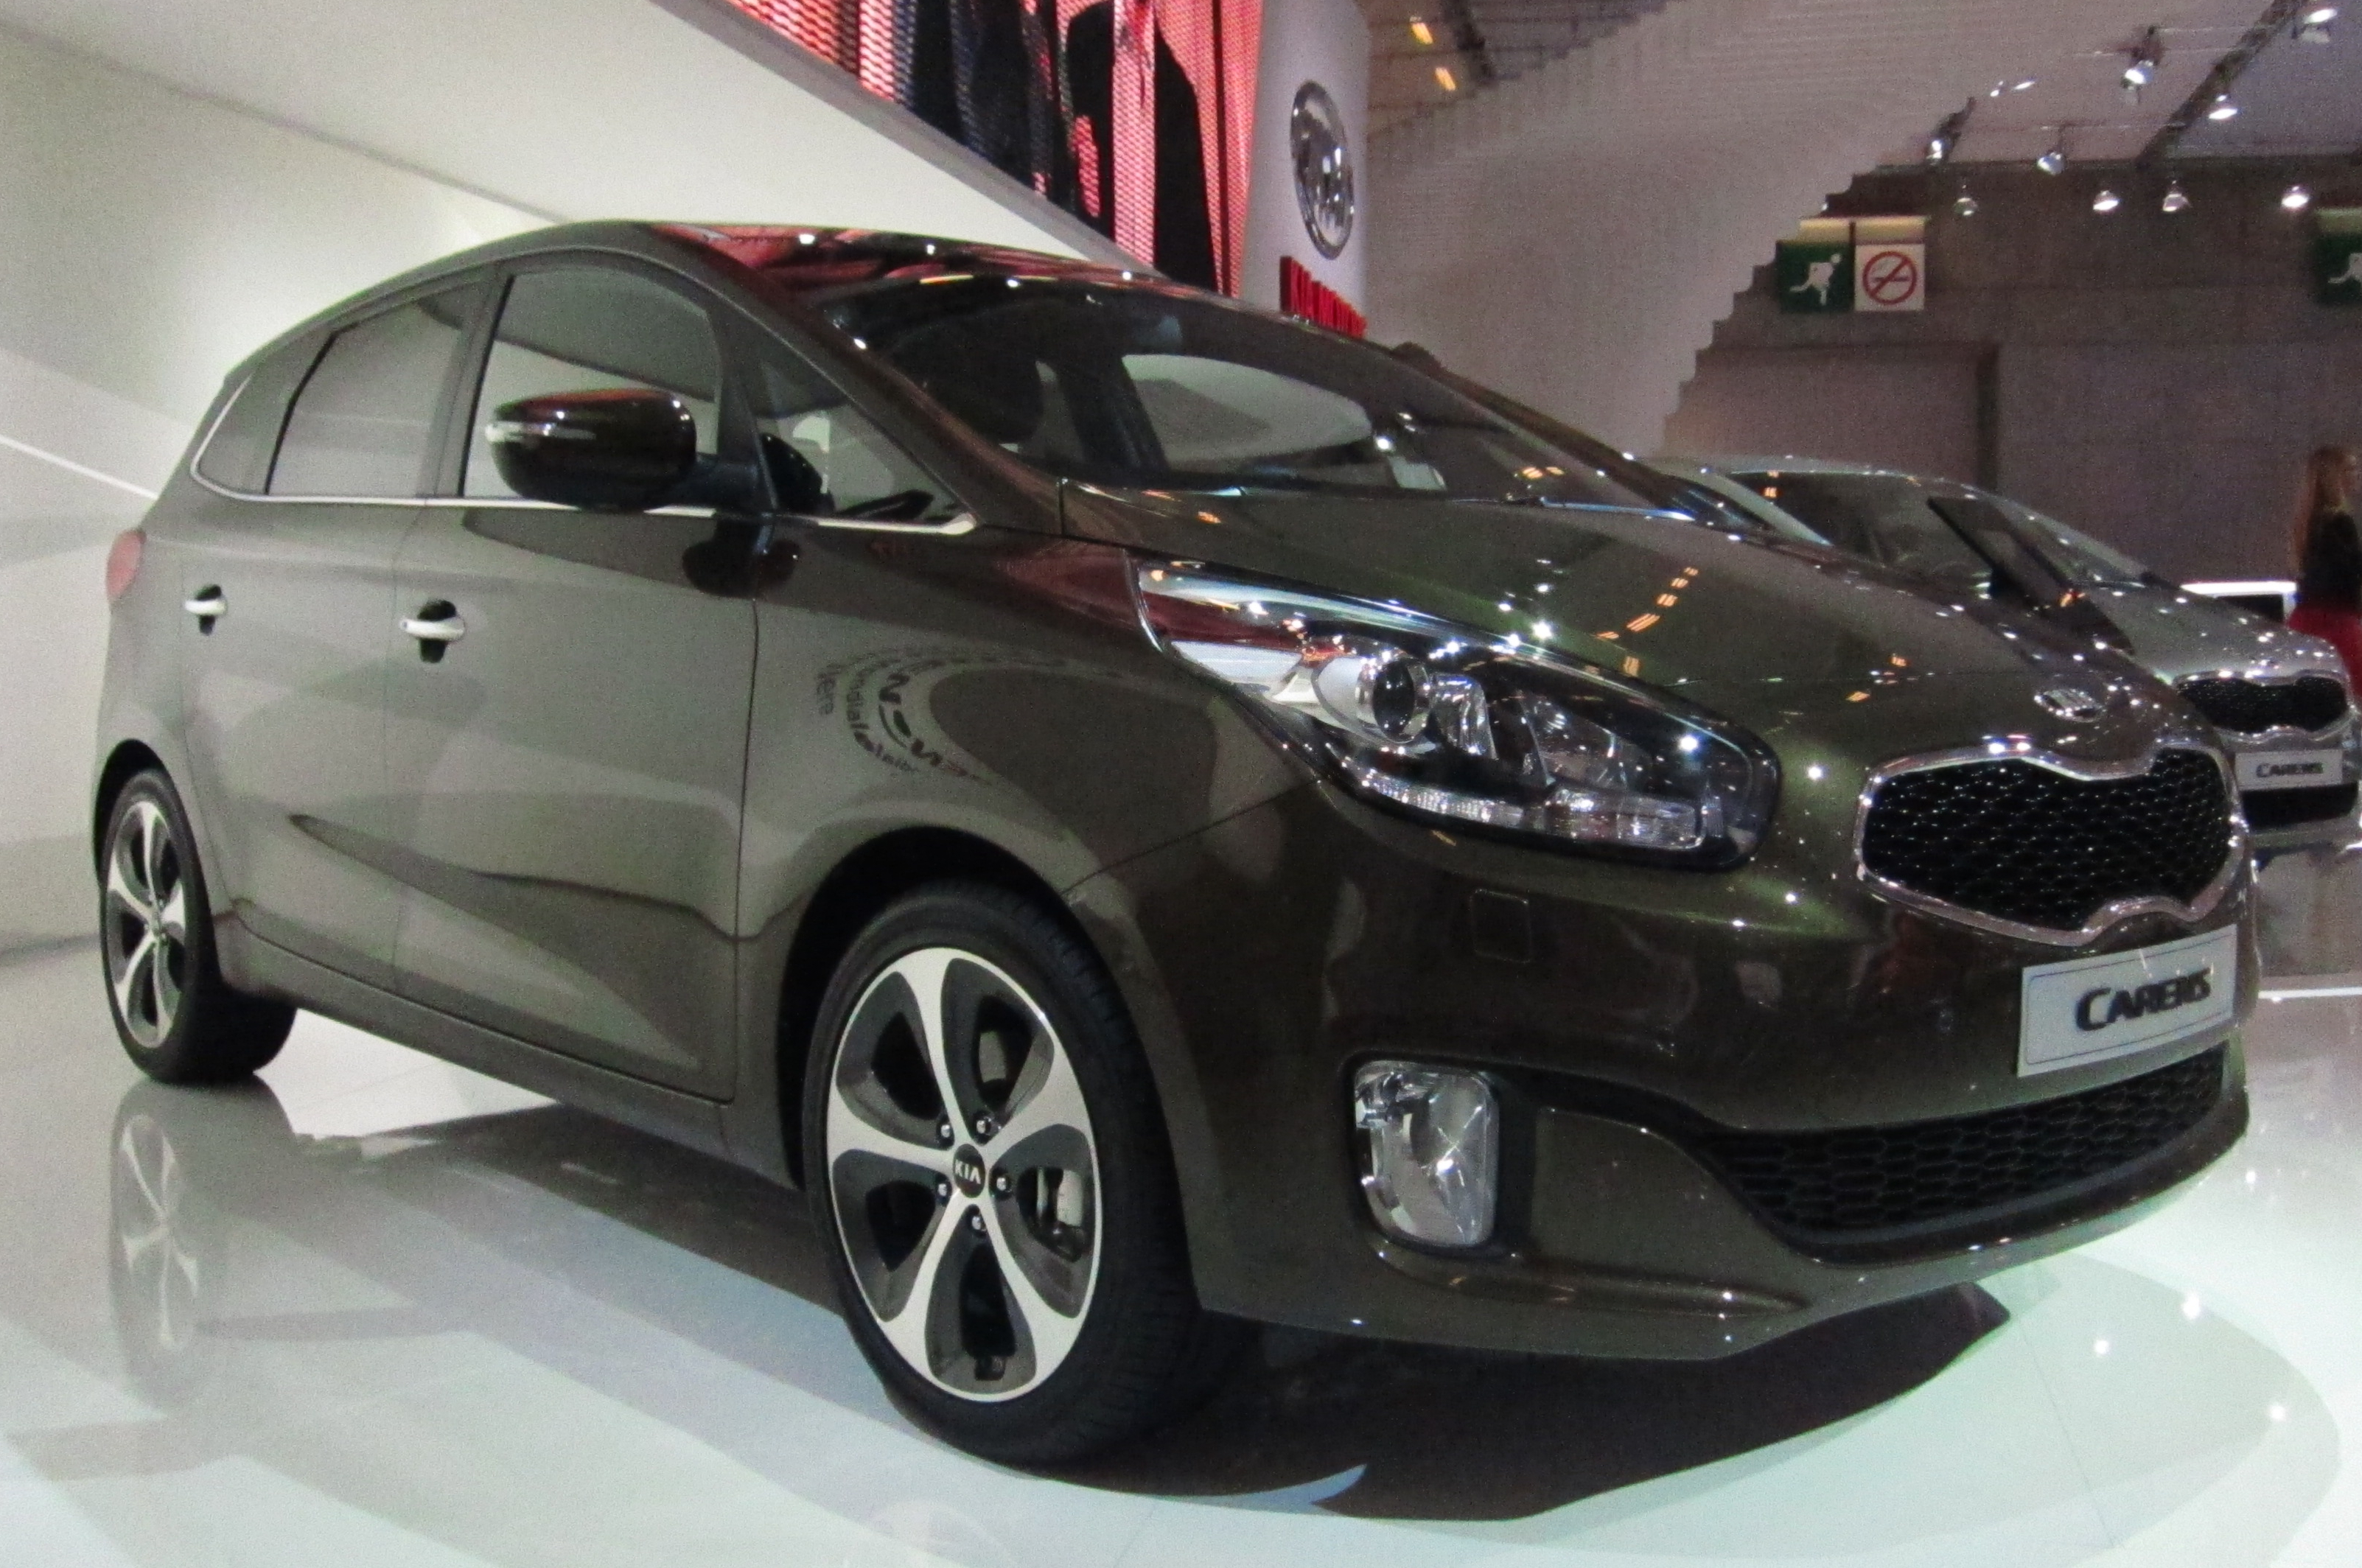 Kia Carens photo 11